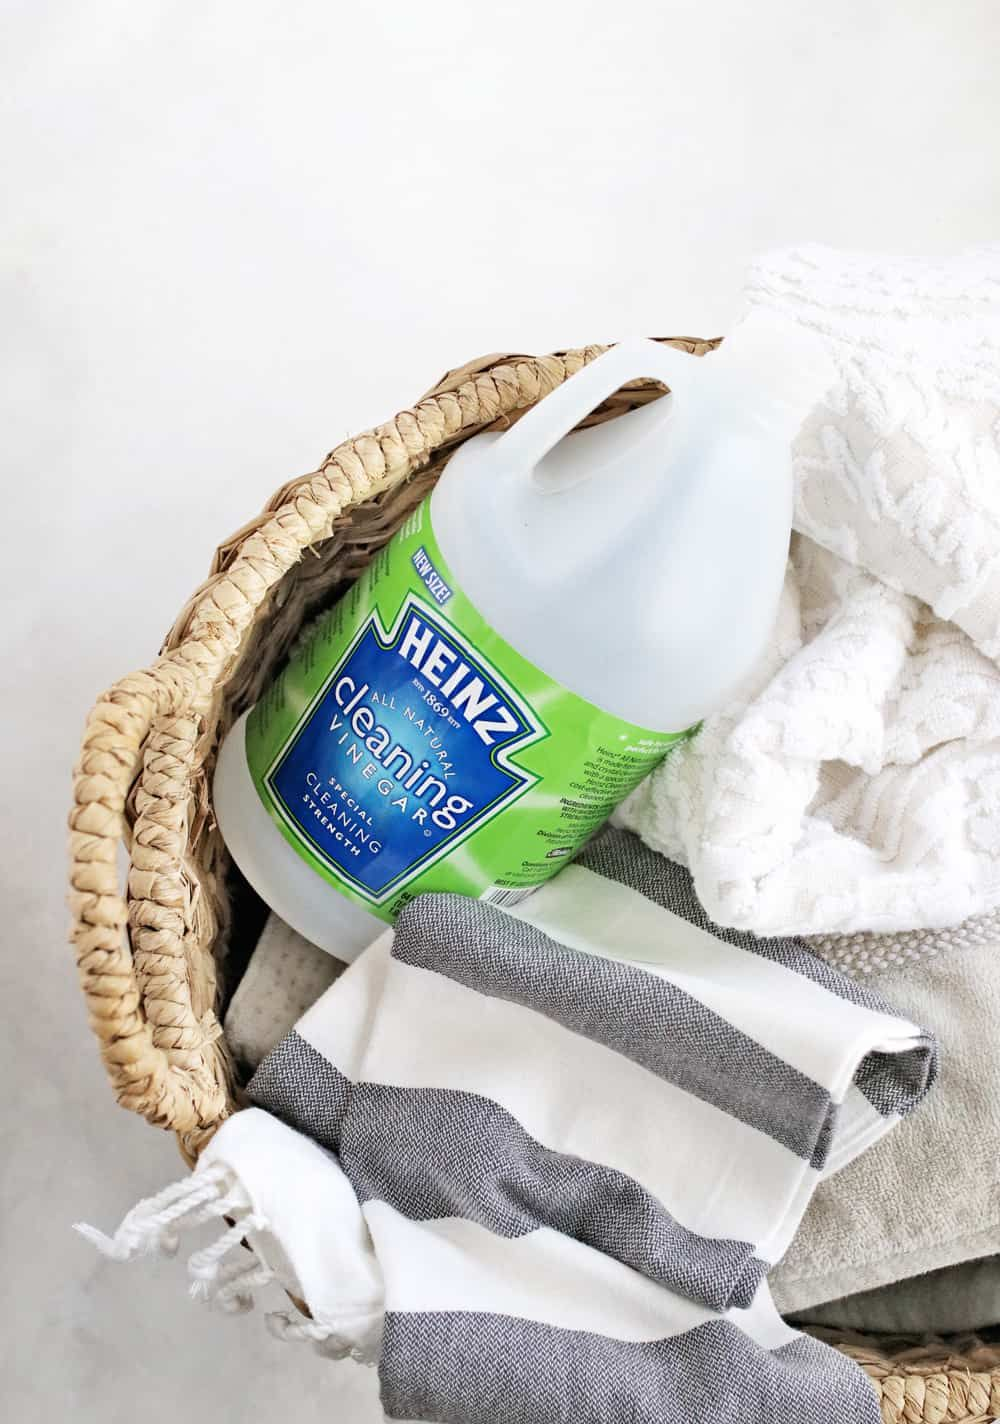 2e5bf794a789cd8d0c8518dc5247c5ed - How To Get Fabric Softener Residue Out Of Clothes